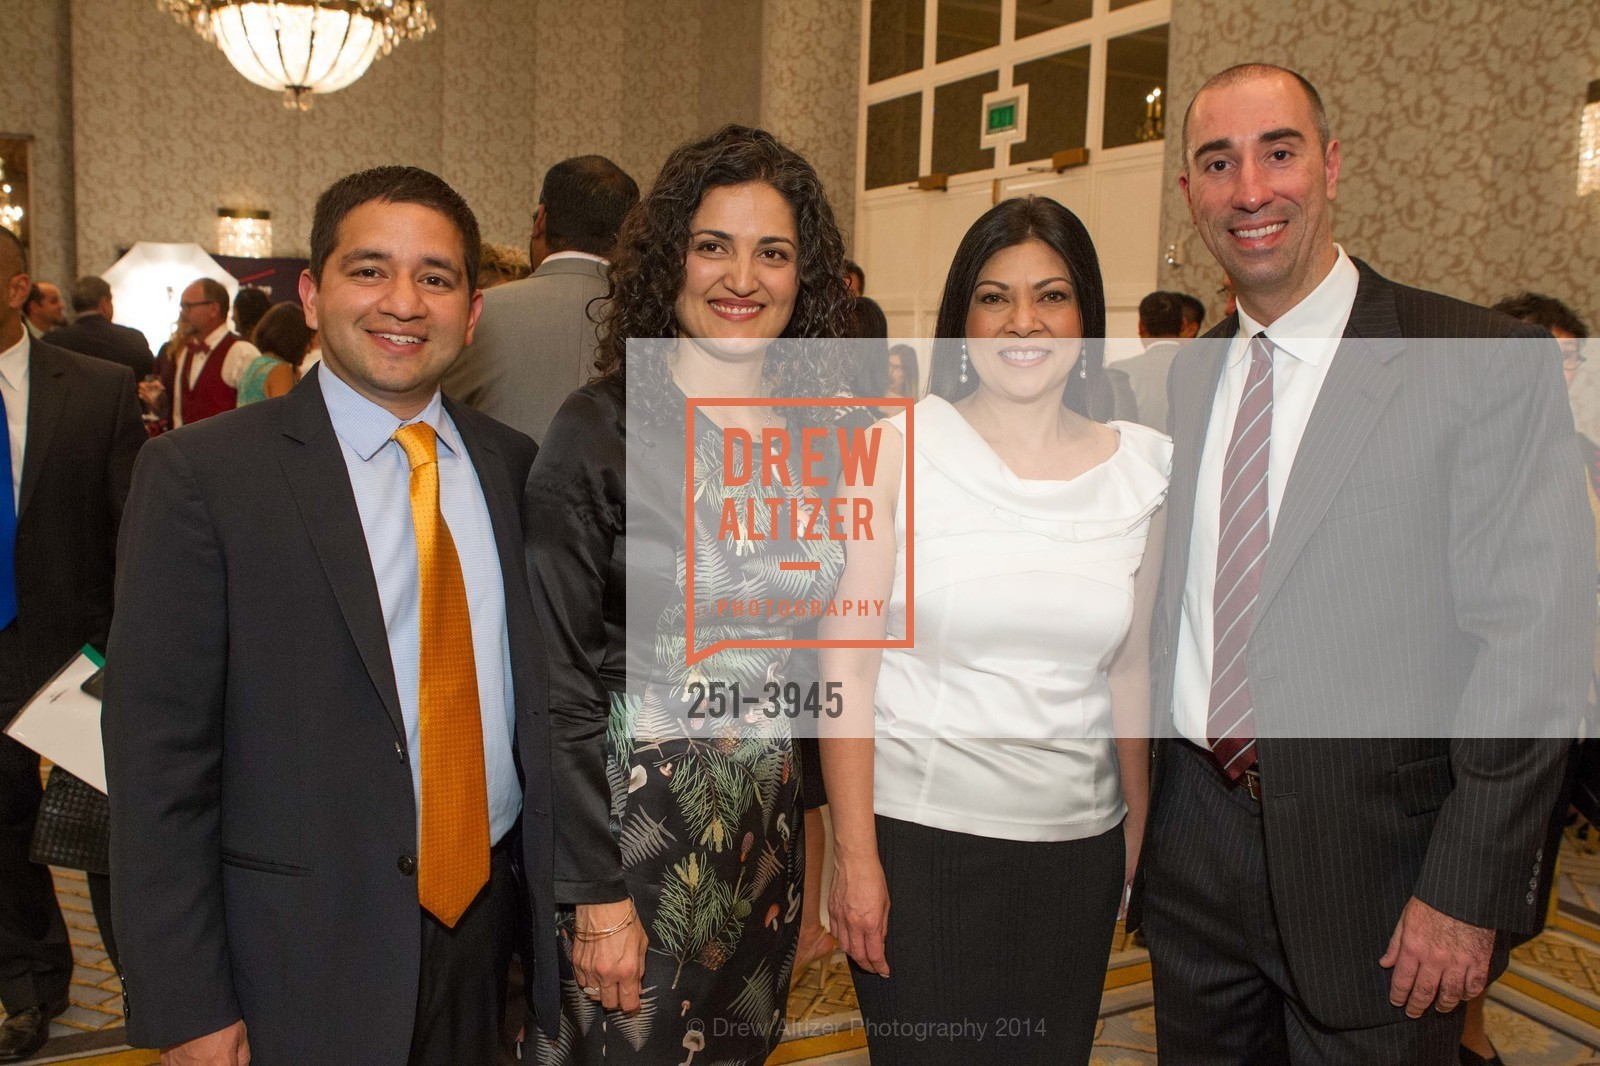 David Shreni, Sandra Kazee, Geraldine Nueva, Roberto Leao, Photo #251-3945